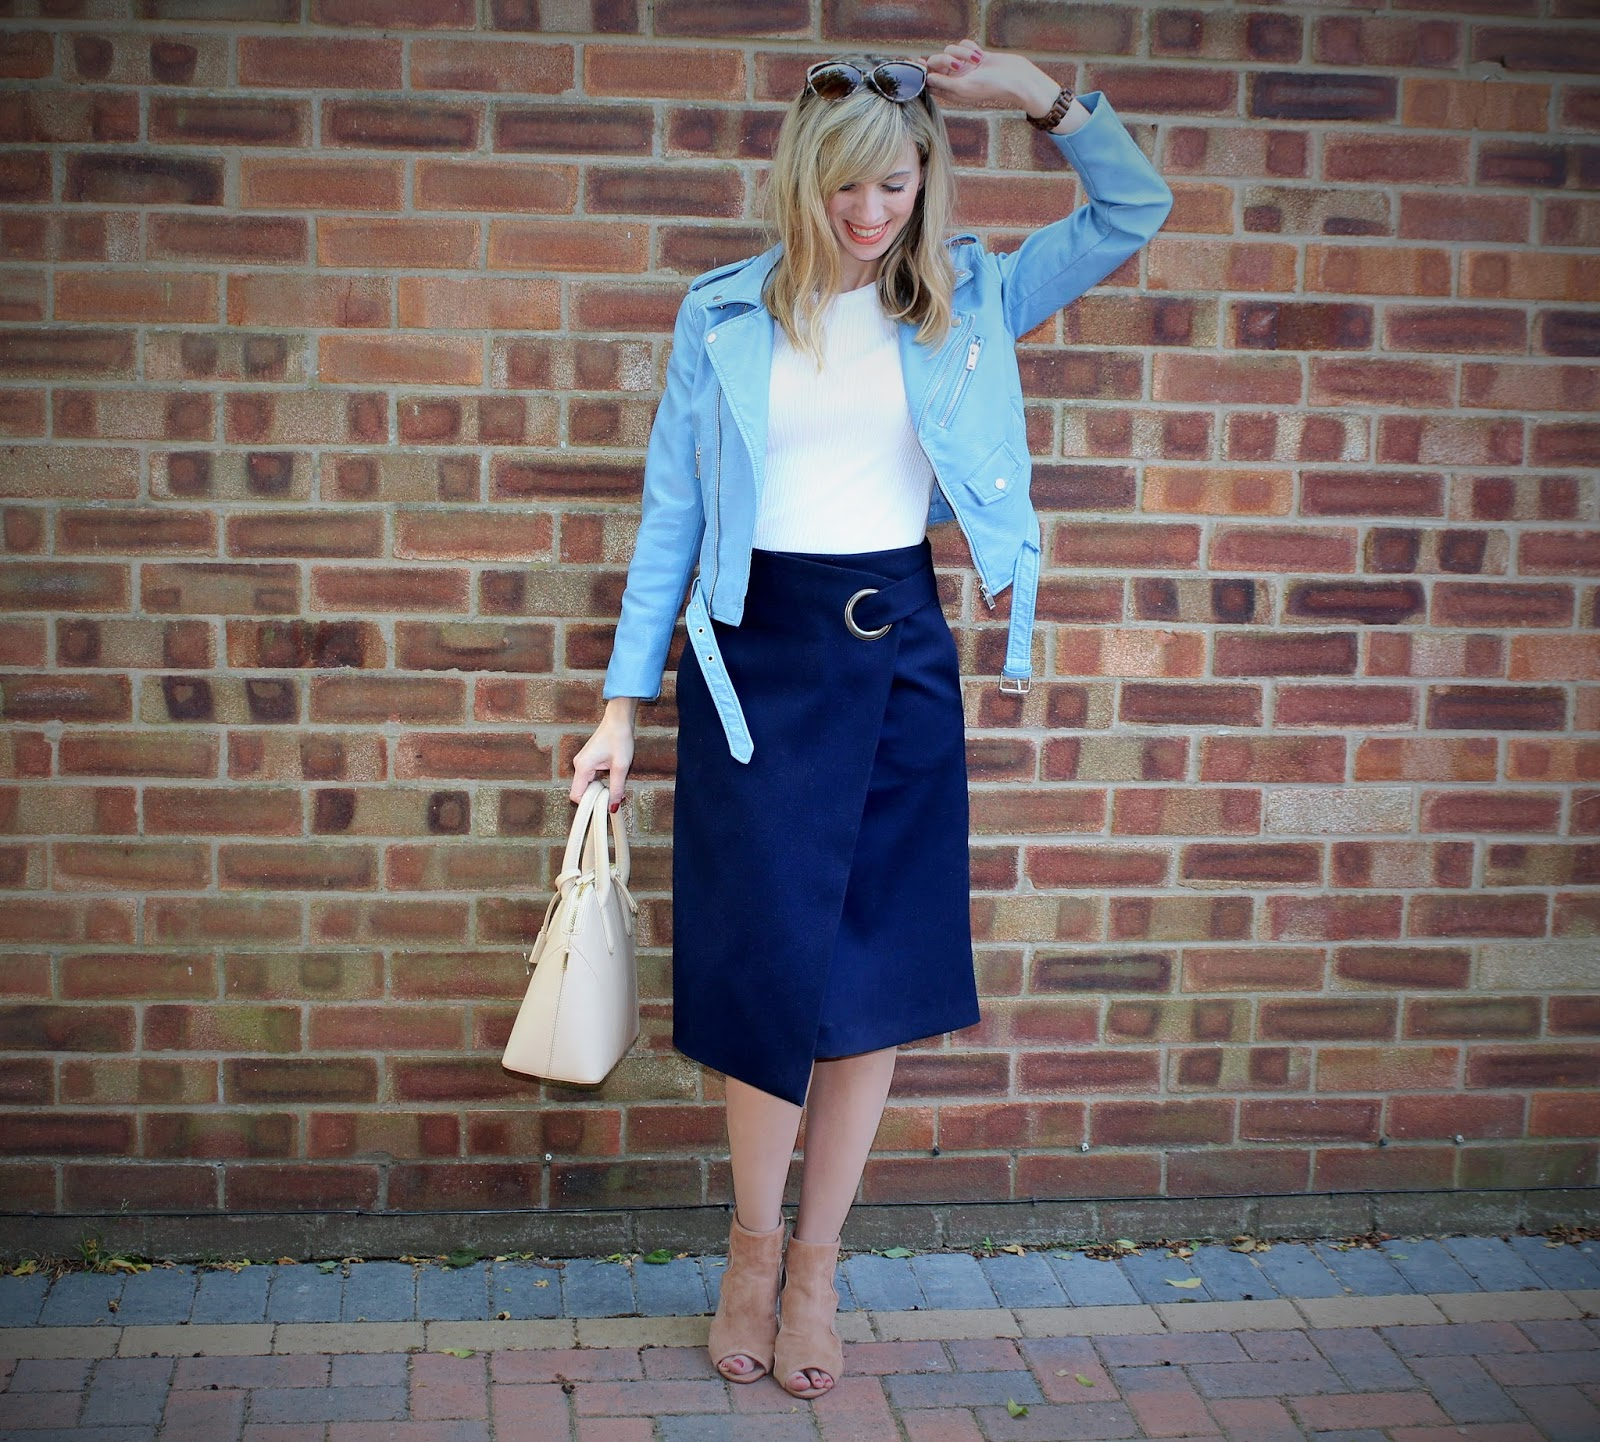 The Wrap Midi 6 - OOTD featuring Topshop skirt, River Island shoes and Zara jacket